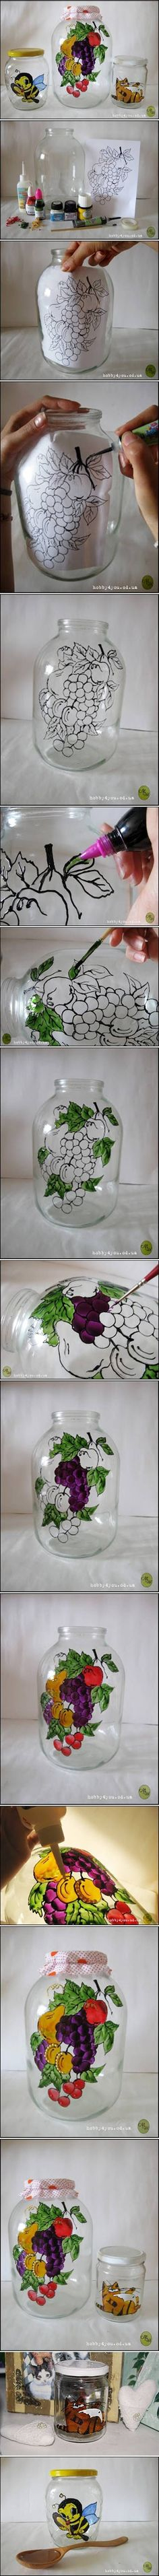 DIY Jar Art diy crafts craft ideas easy crafts diy ideas diy idea diy home easy diy diy art for the home crafty decor home ideas diy decorations